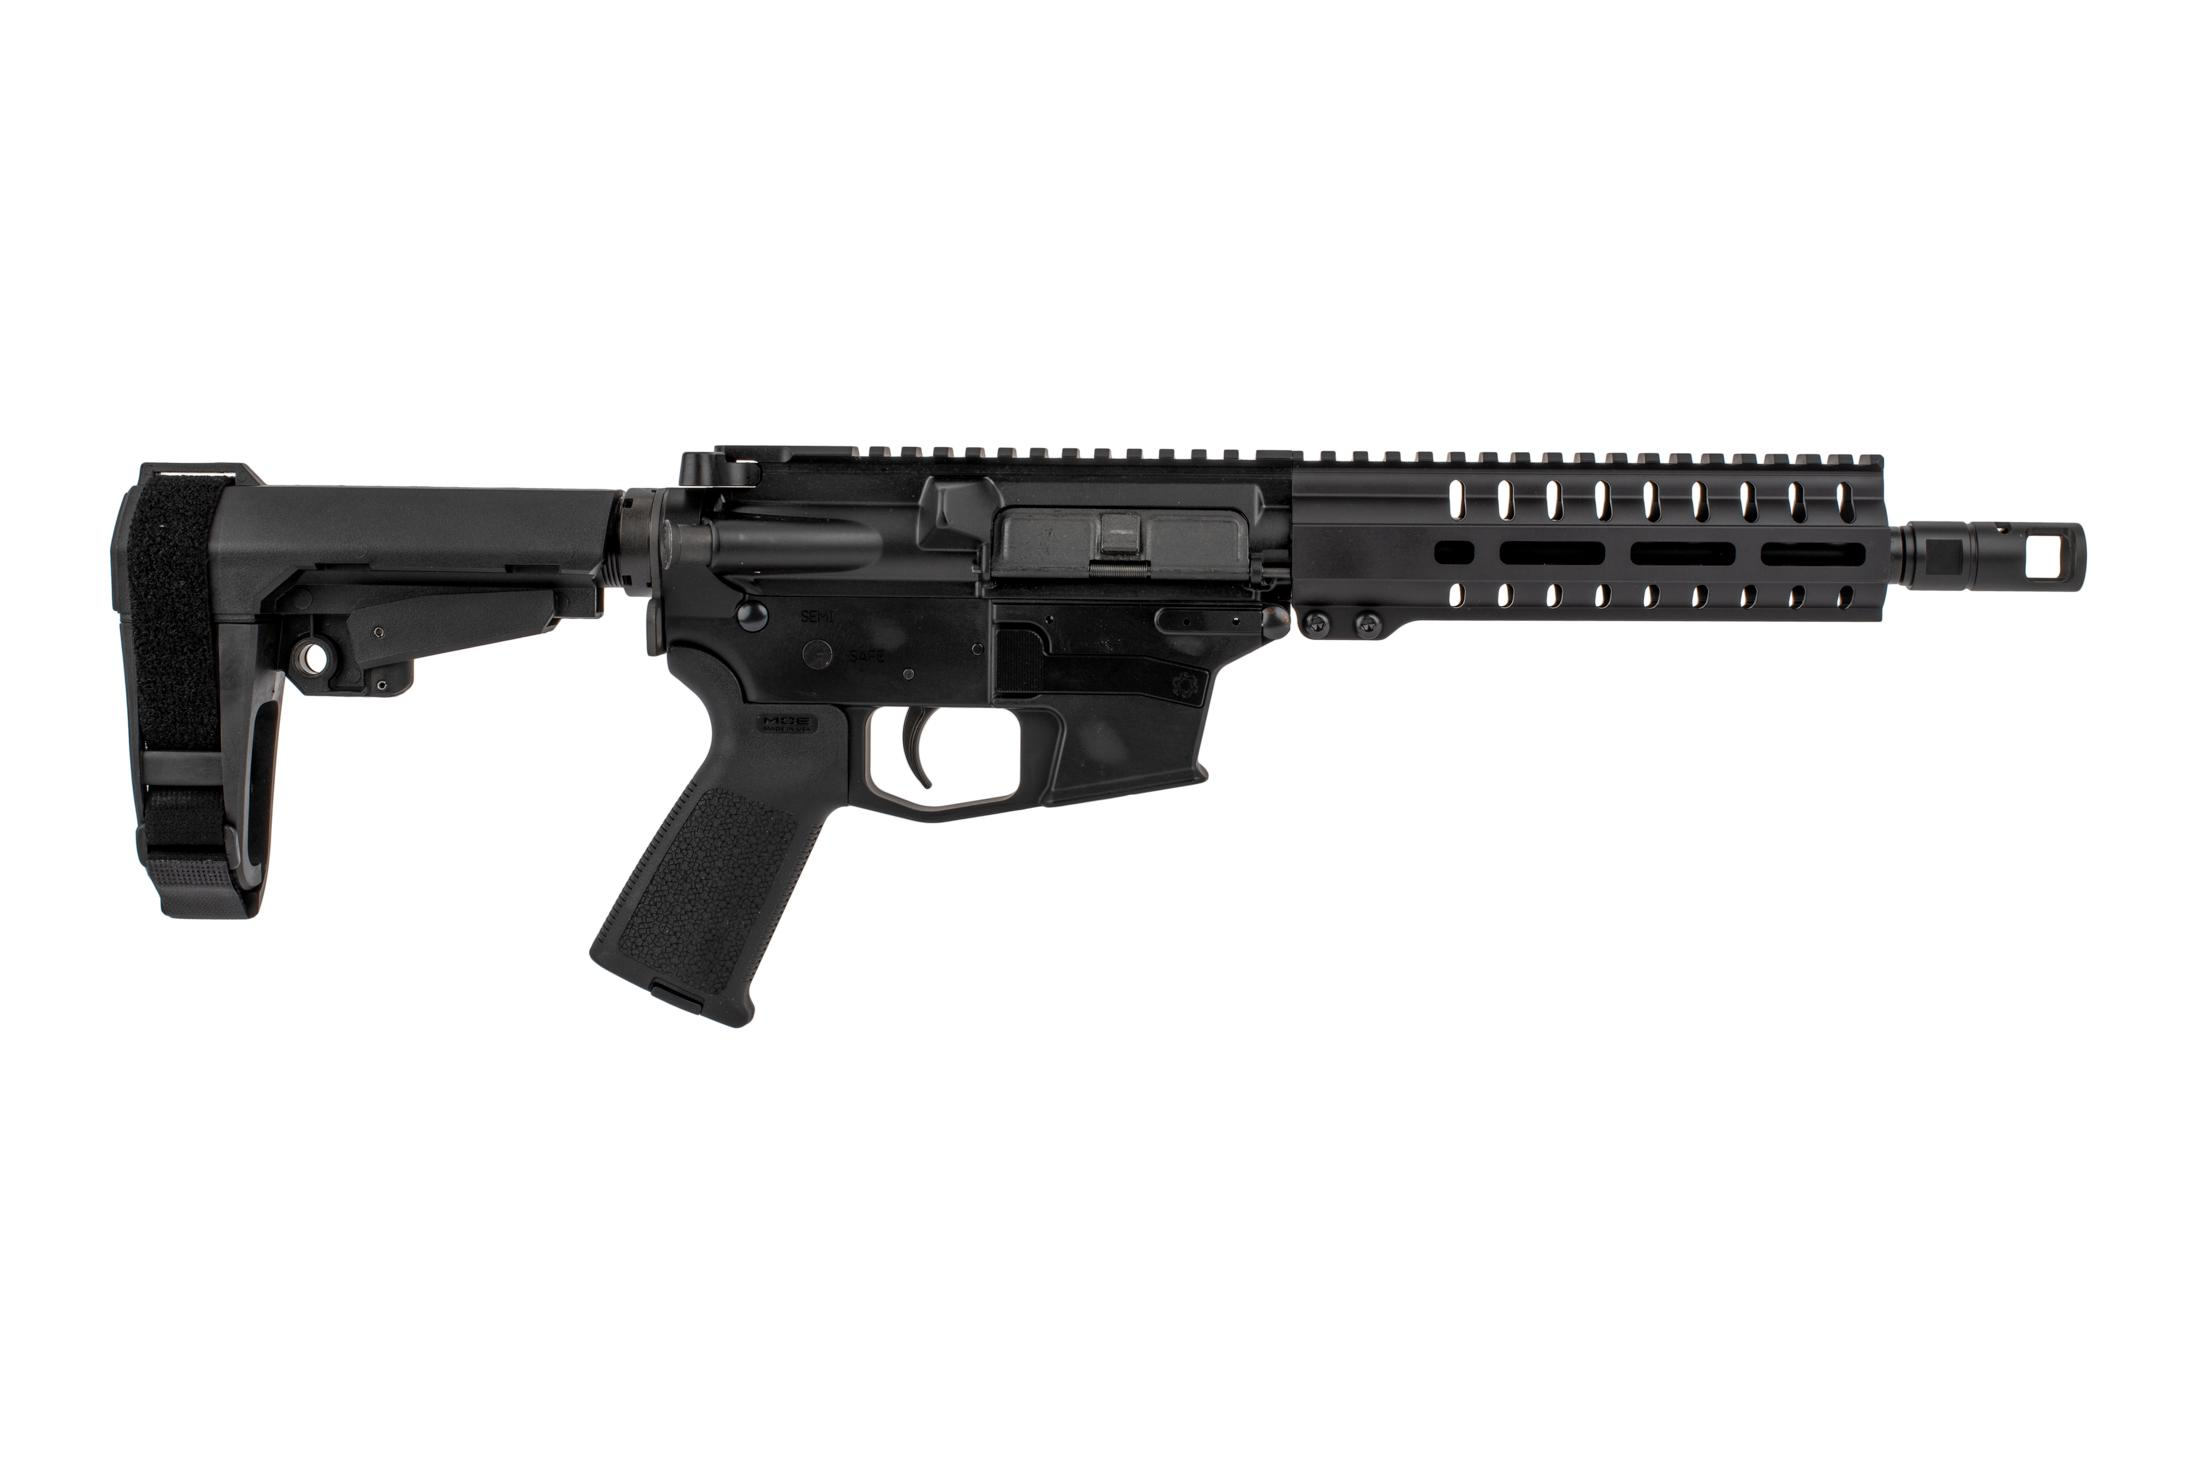 The CMMG Banshee 200 series 45 acp glock style AR pistol features an 8 inch barrel and a free float M-LOK handguard